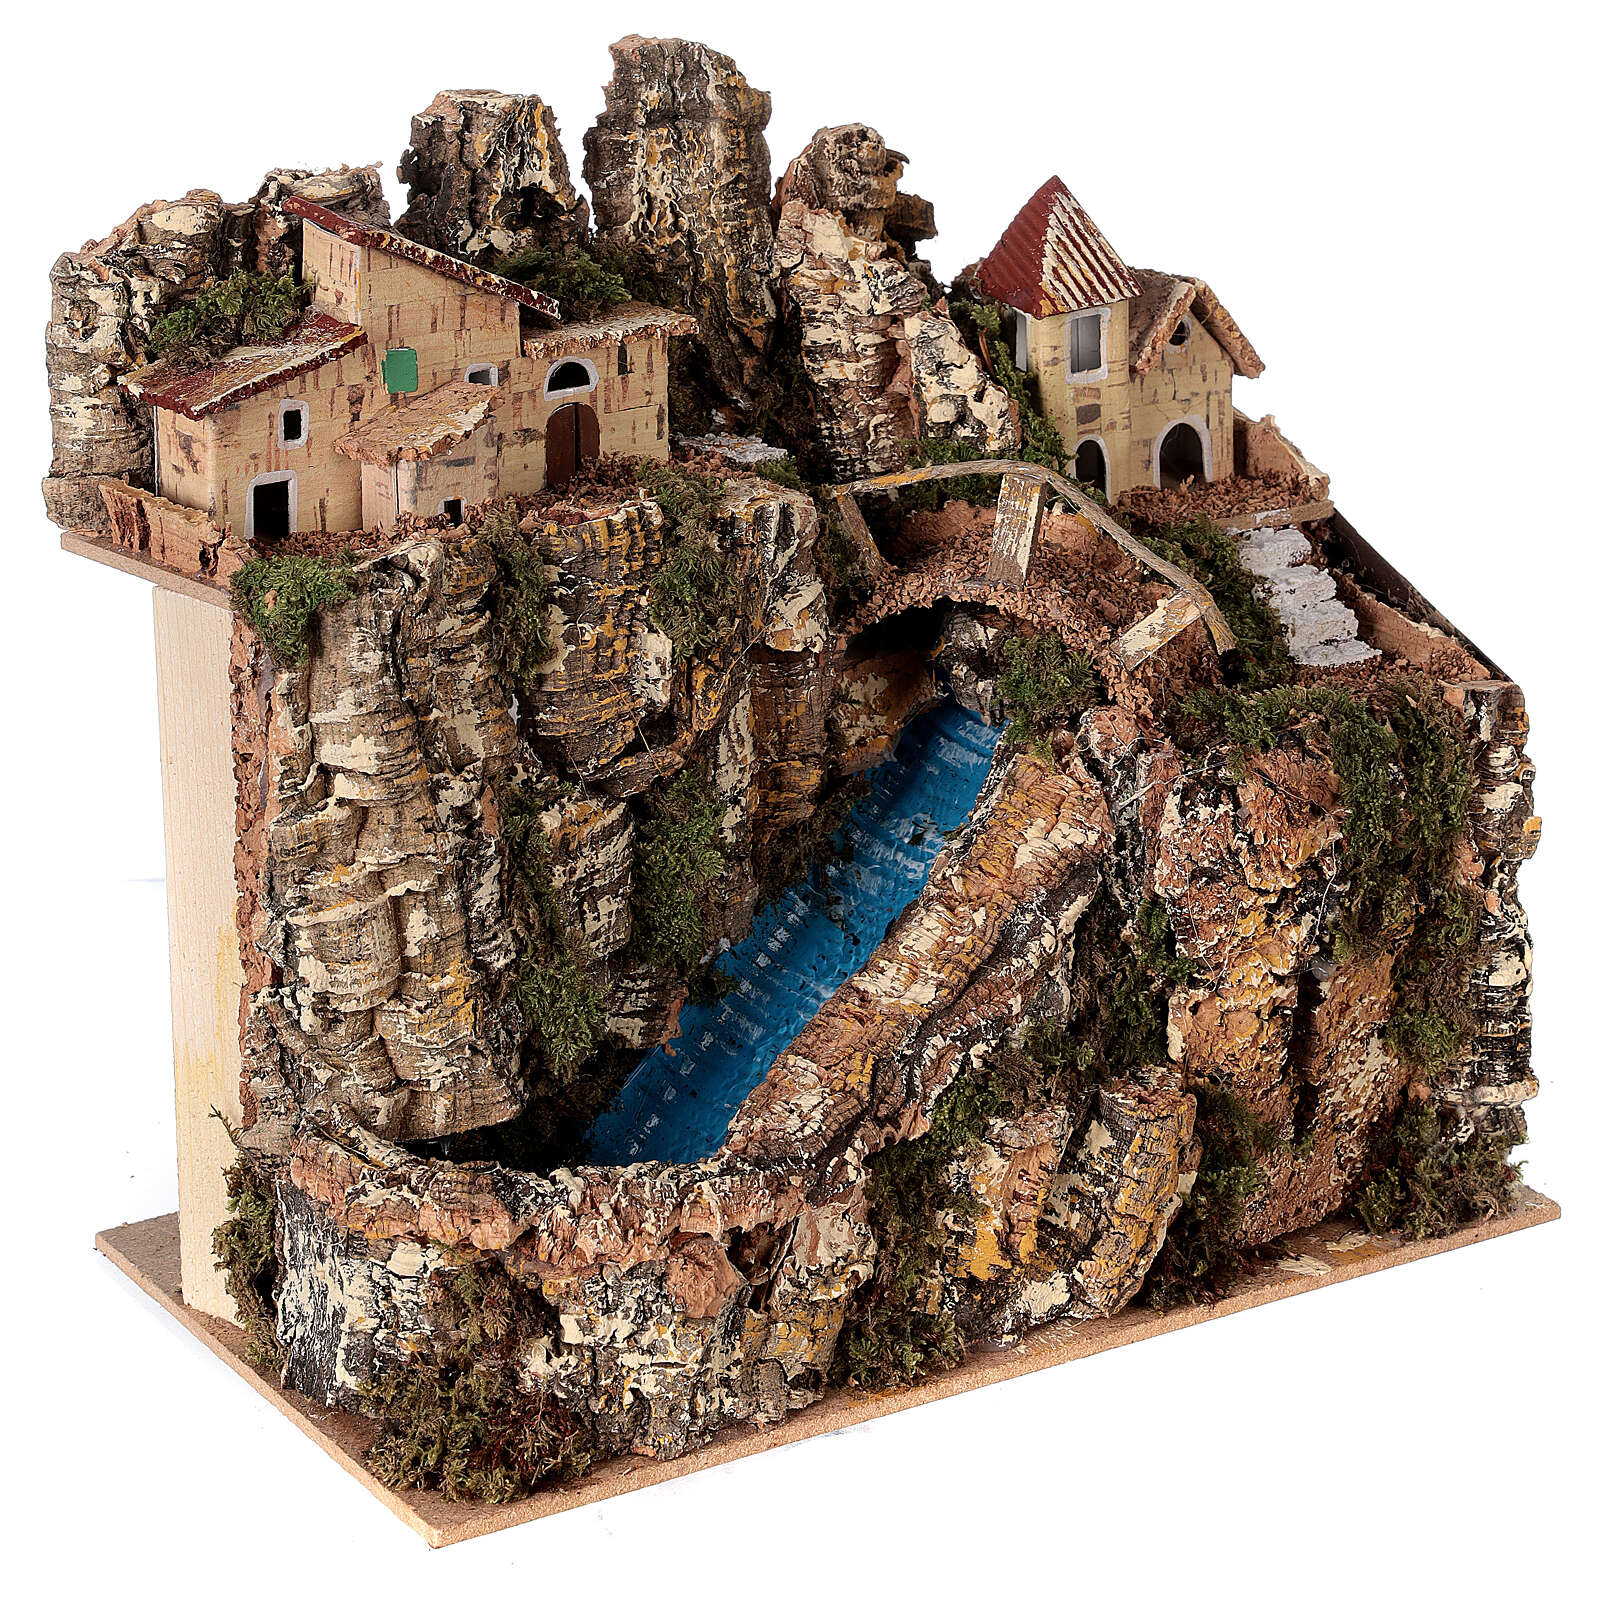 Stream bridge village pump 25x25x15 cm Nativity scene 8-10 cm 4